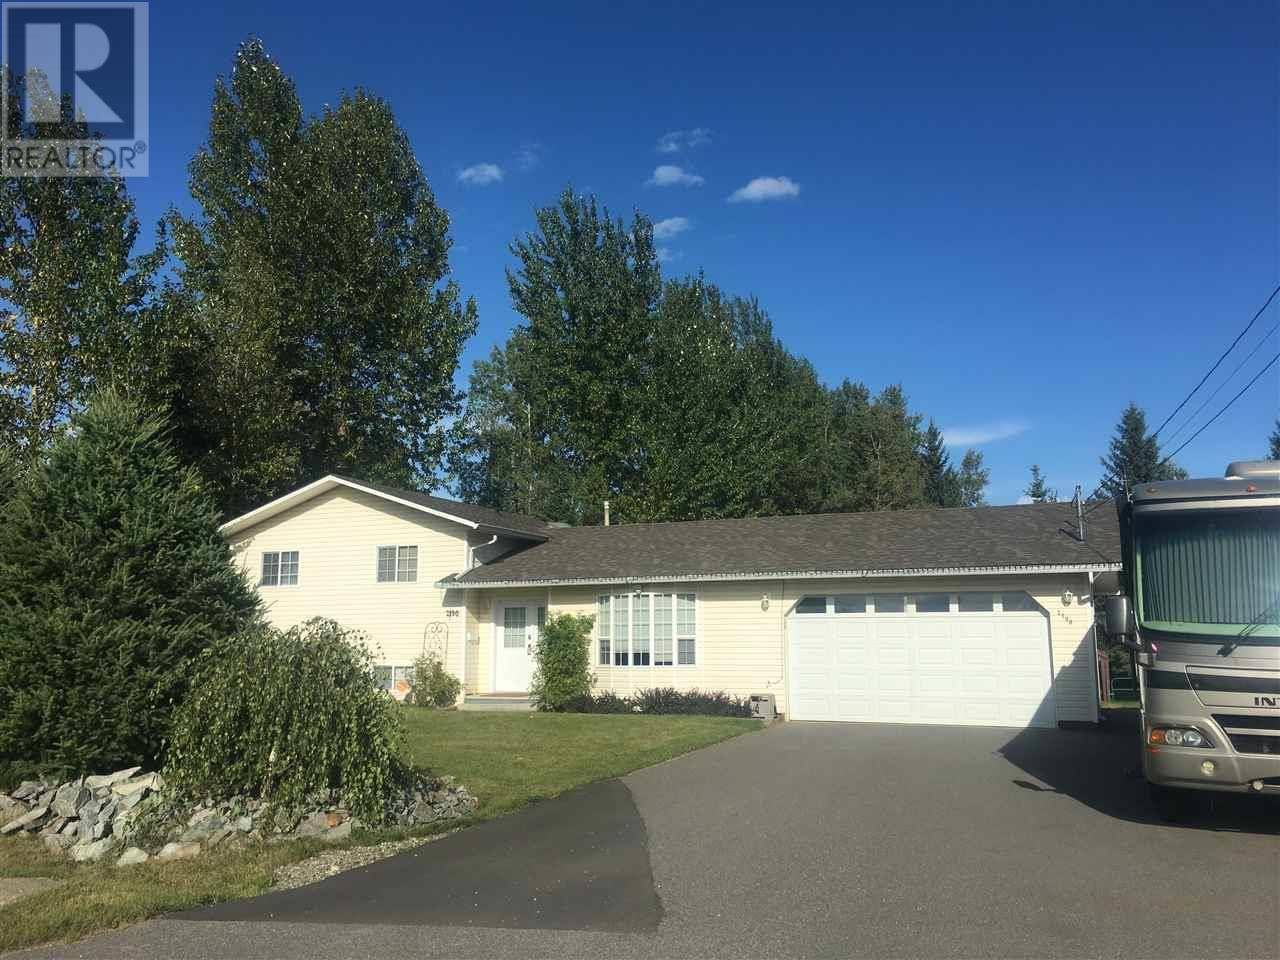 House for sale at 2190 Ryan Rd Quesnel British Columbia - MLS: R2399165